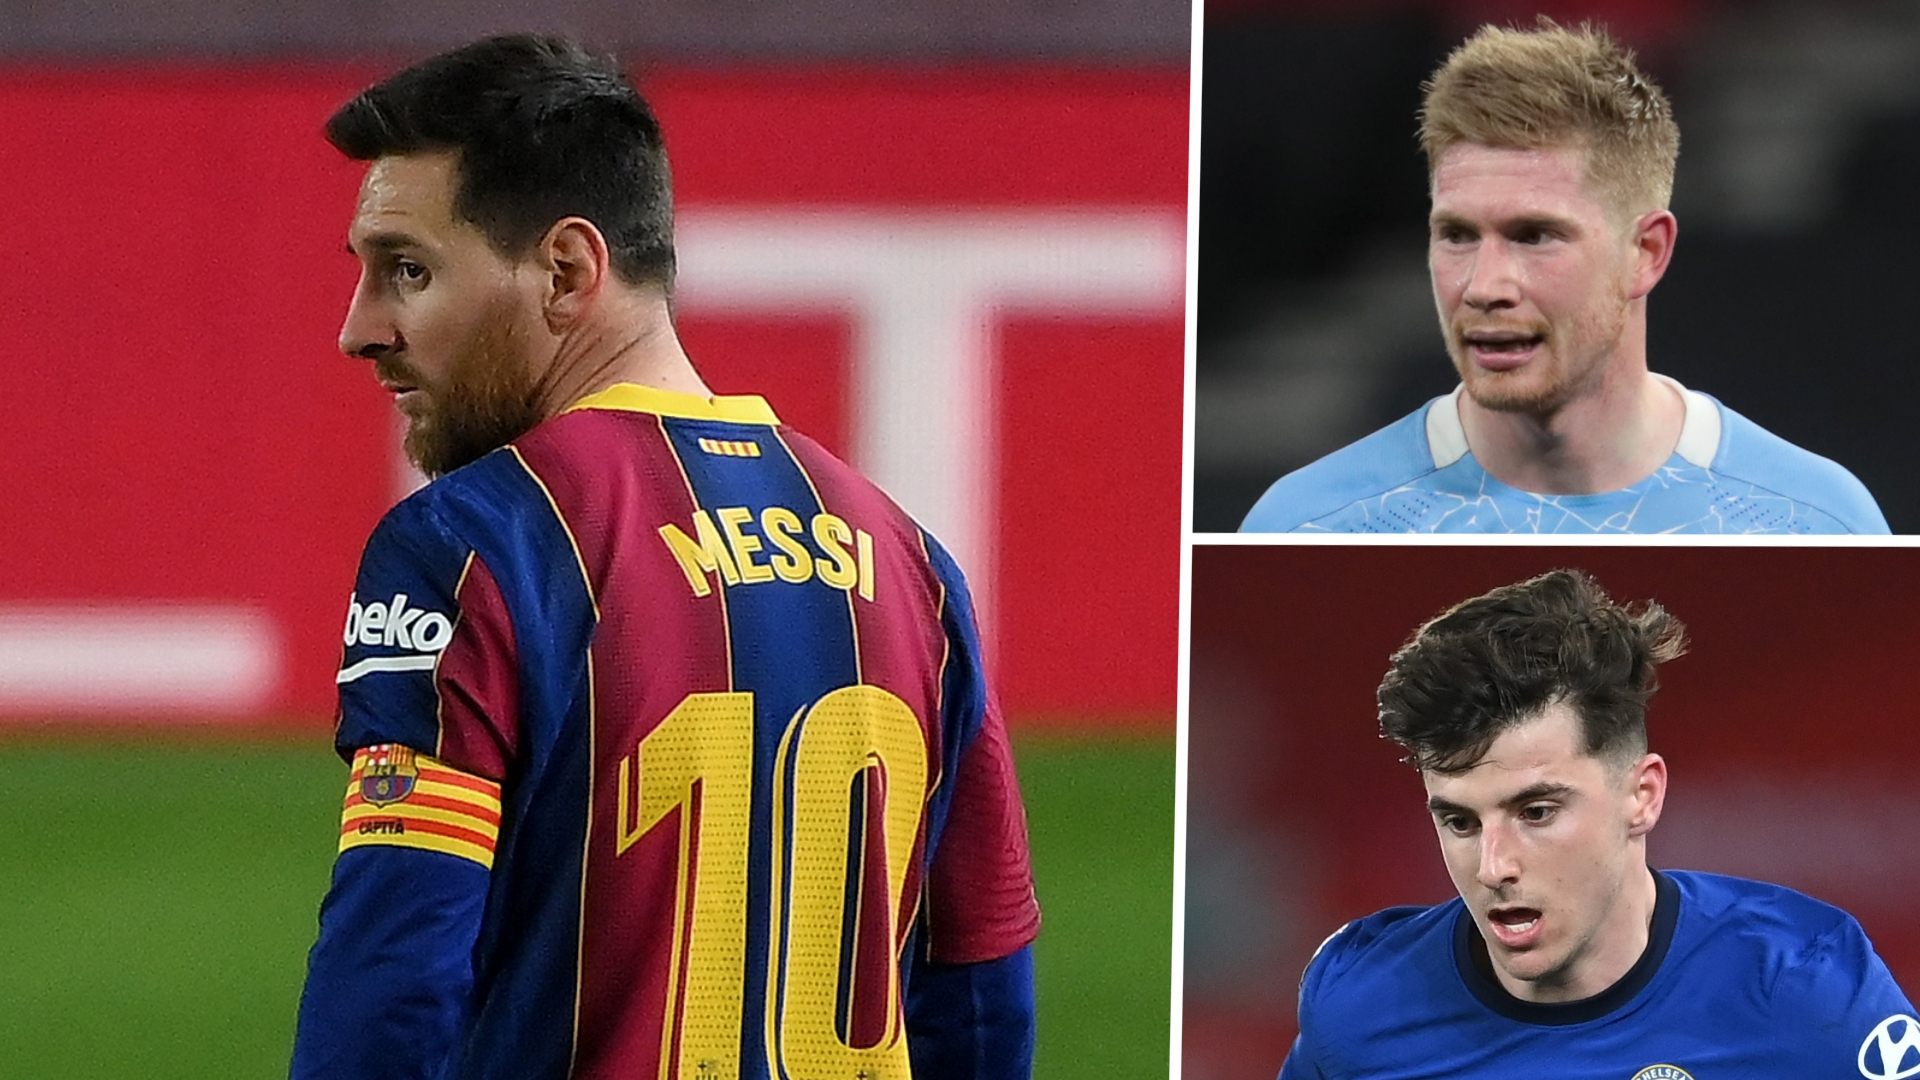 Matchday LIVE: Chelsea vs Man City, Barca take on Athletic Bilbao in Copa del Rey final